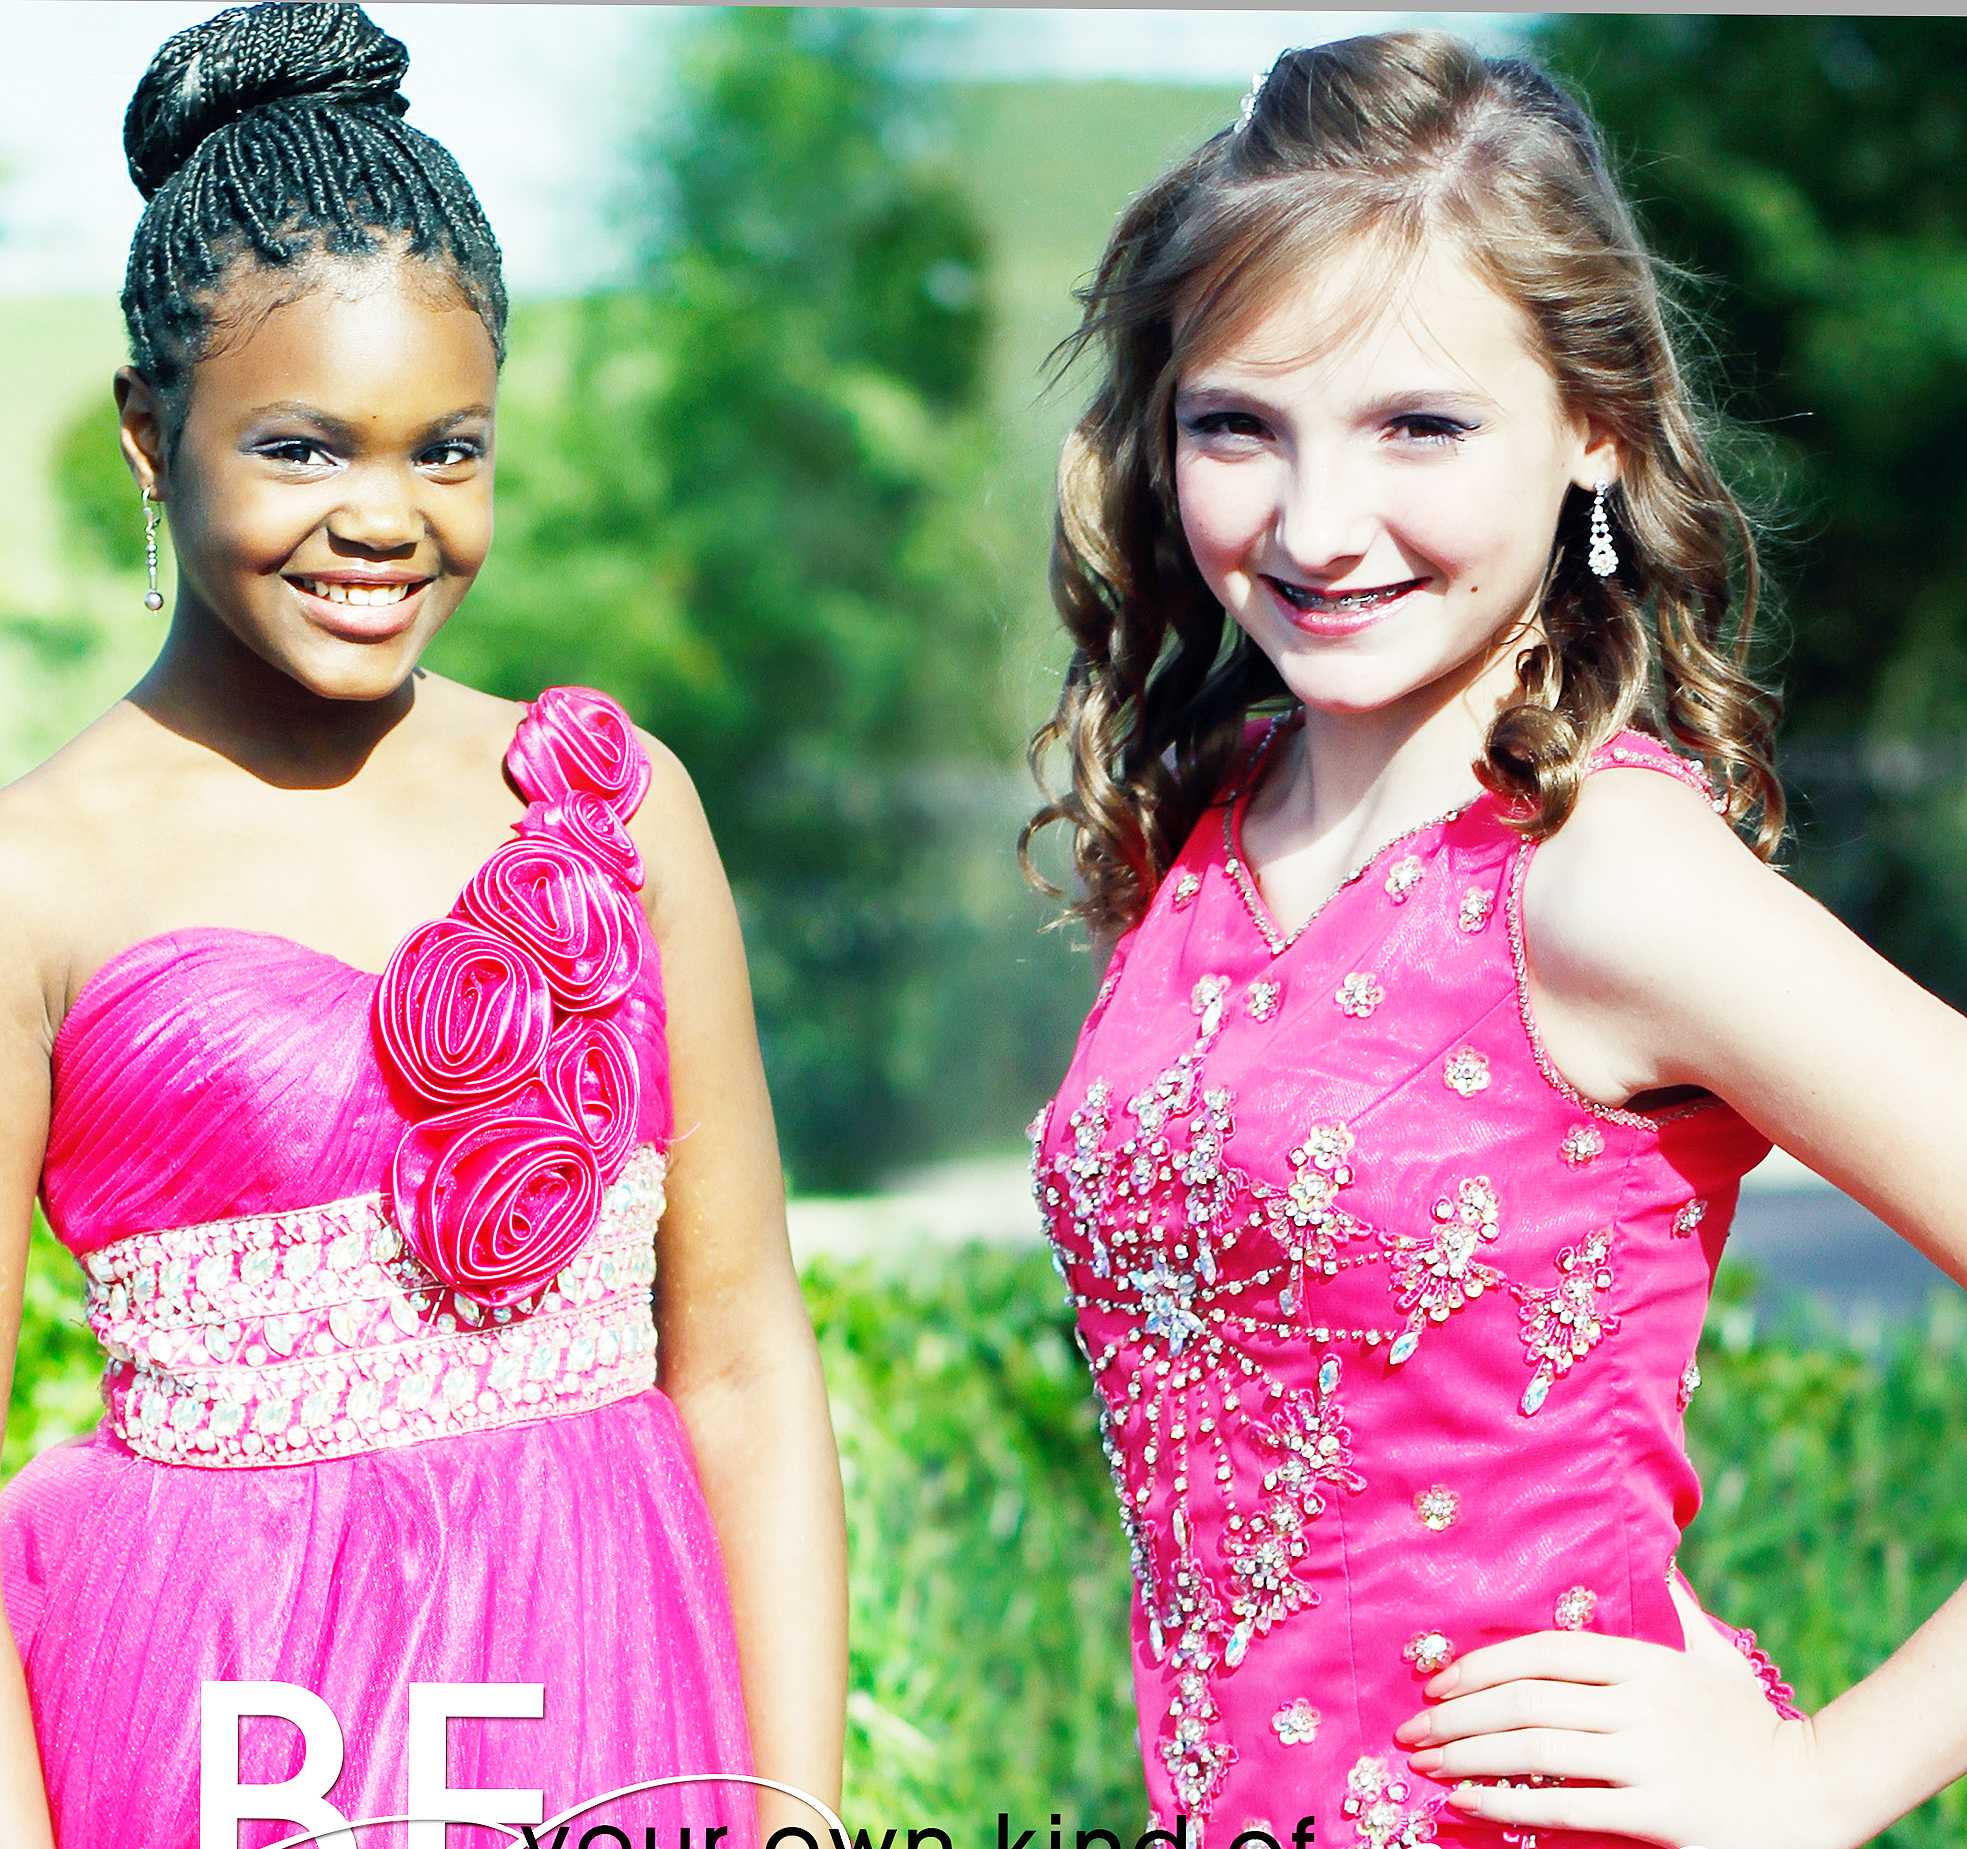 Belle of the Ball offers affordable dresses | The Teen Appeal